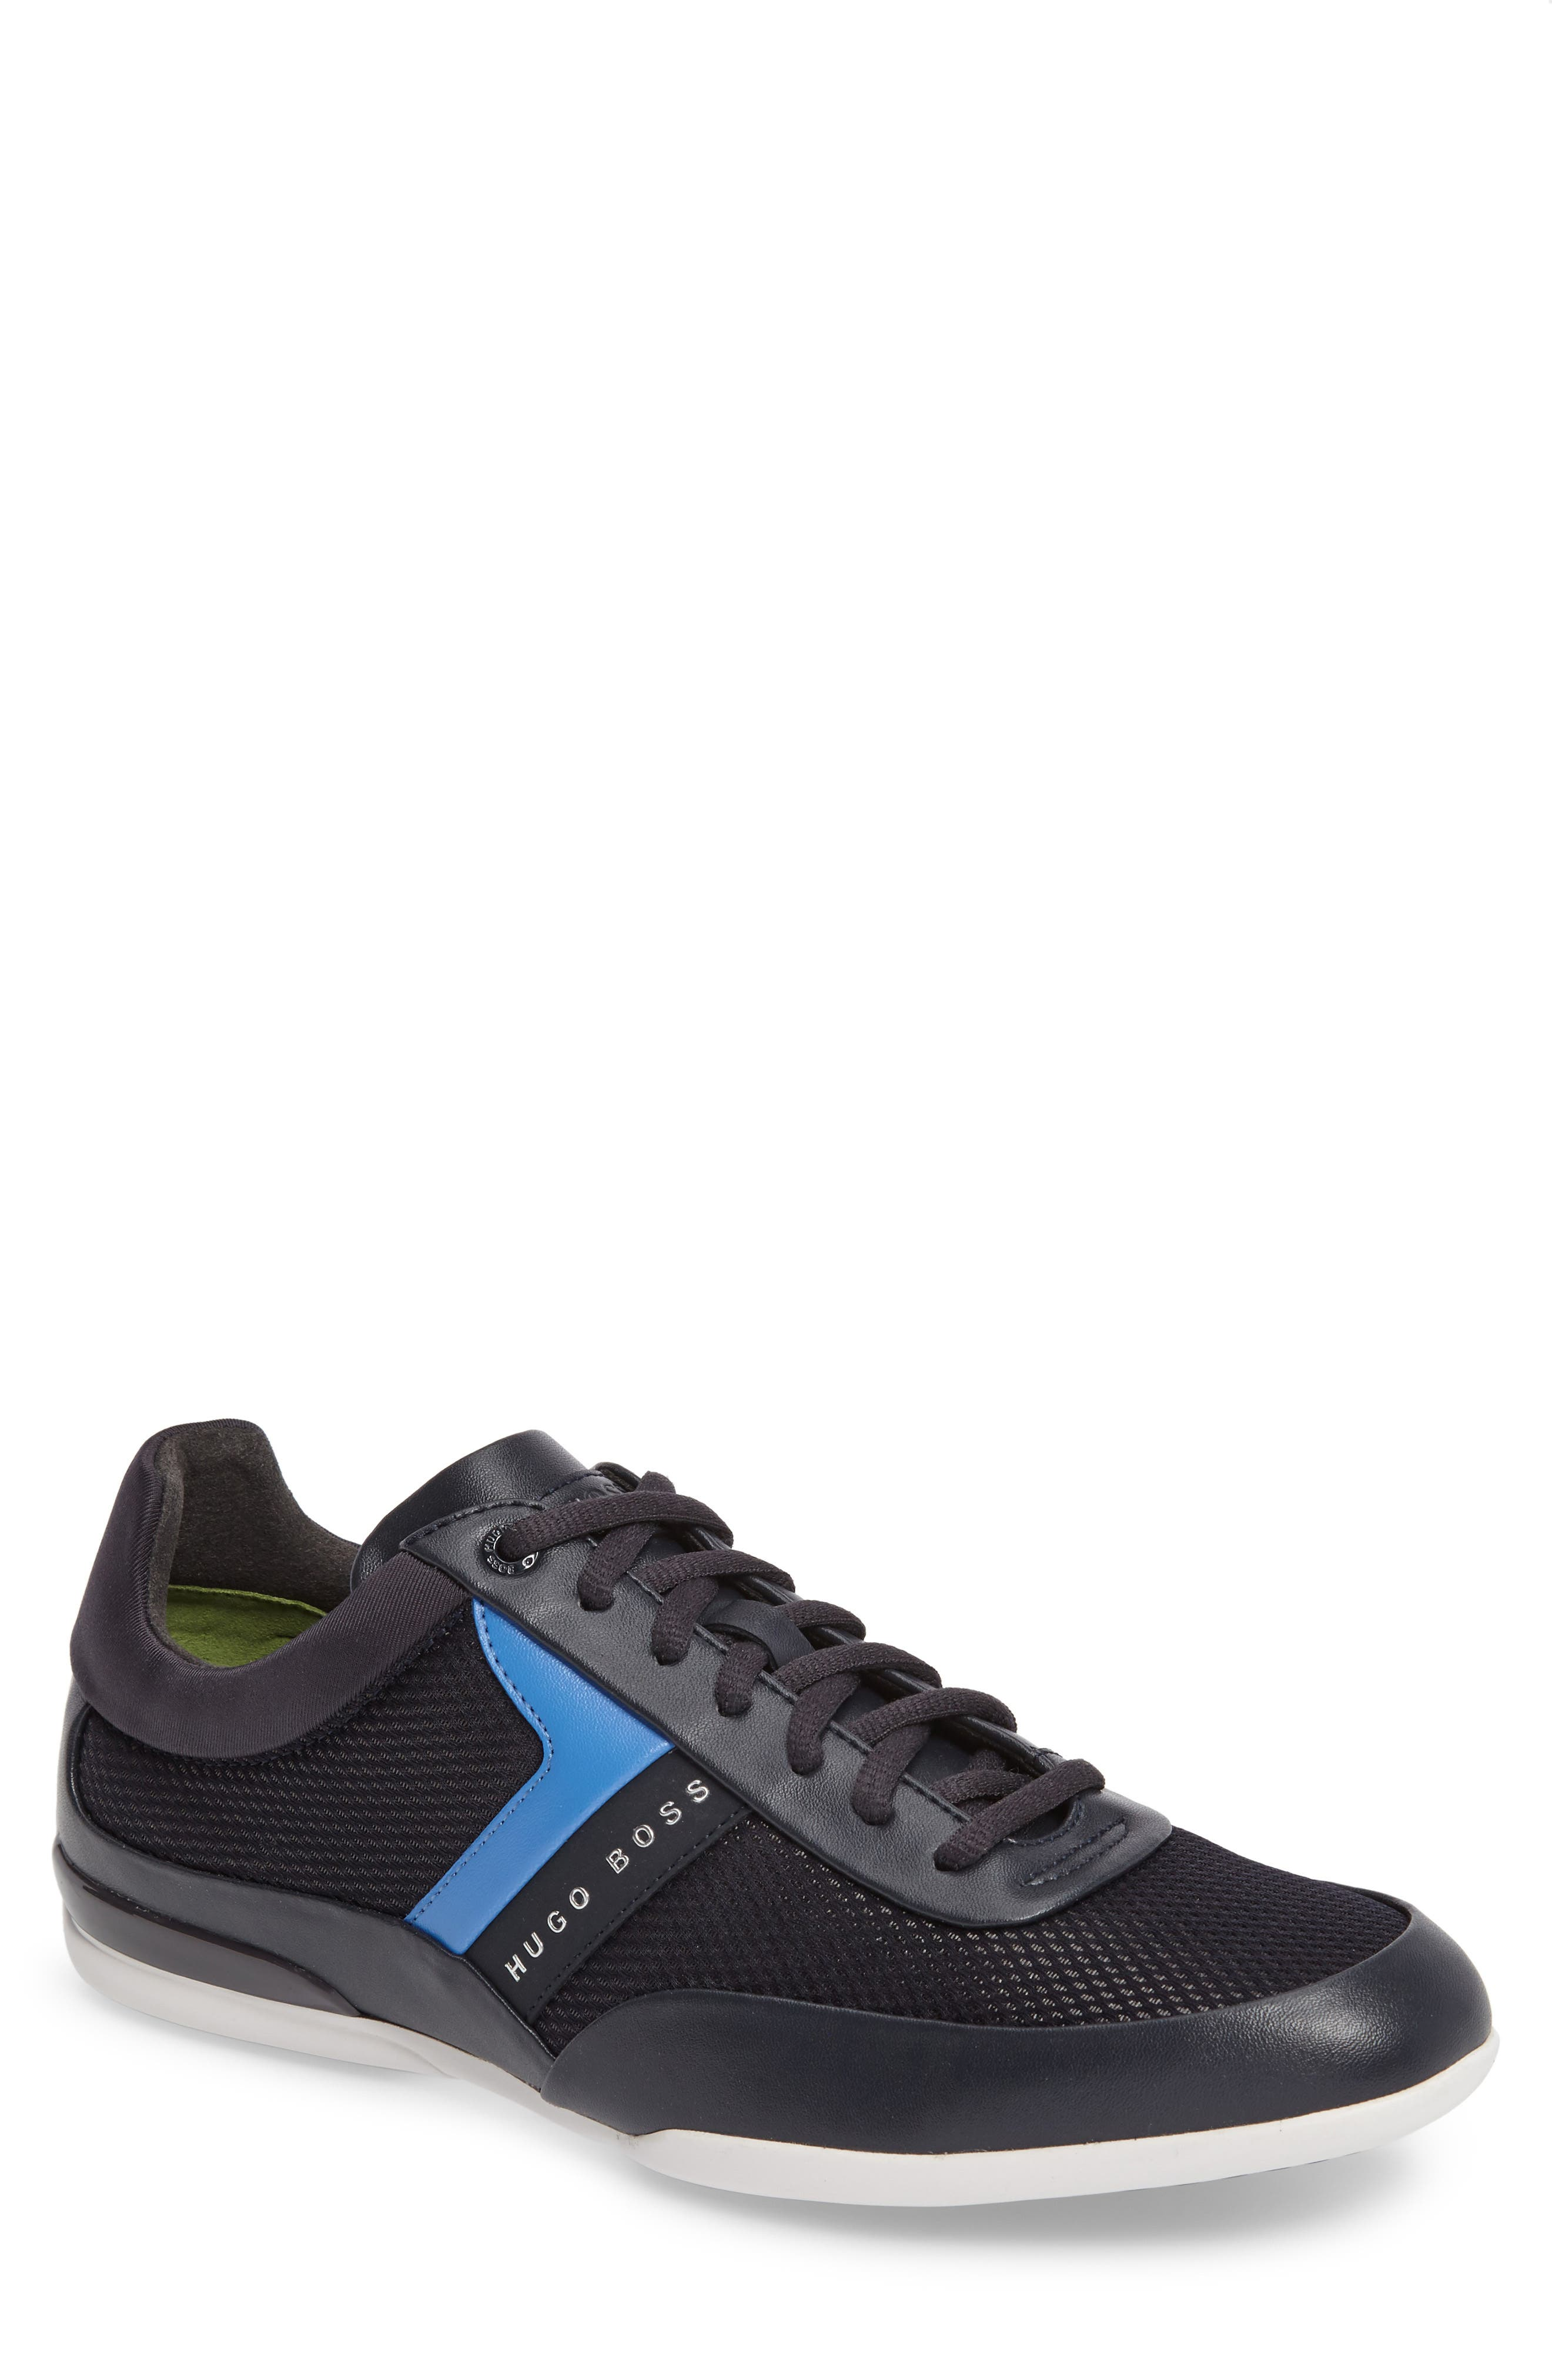 Green Space Mesh Sneaker,                             Main thumbnail 1, color,                             Dark Blue Leather